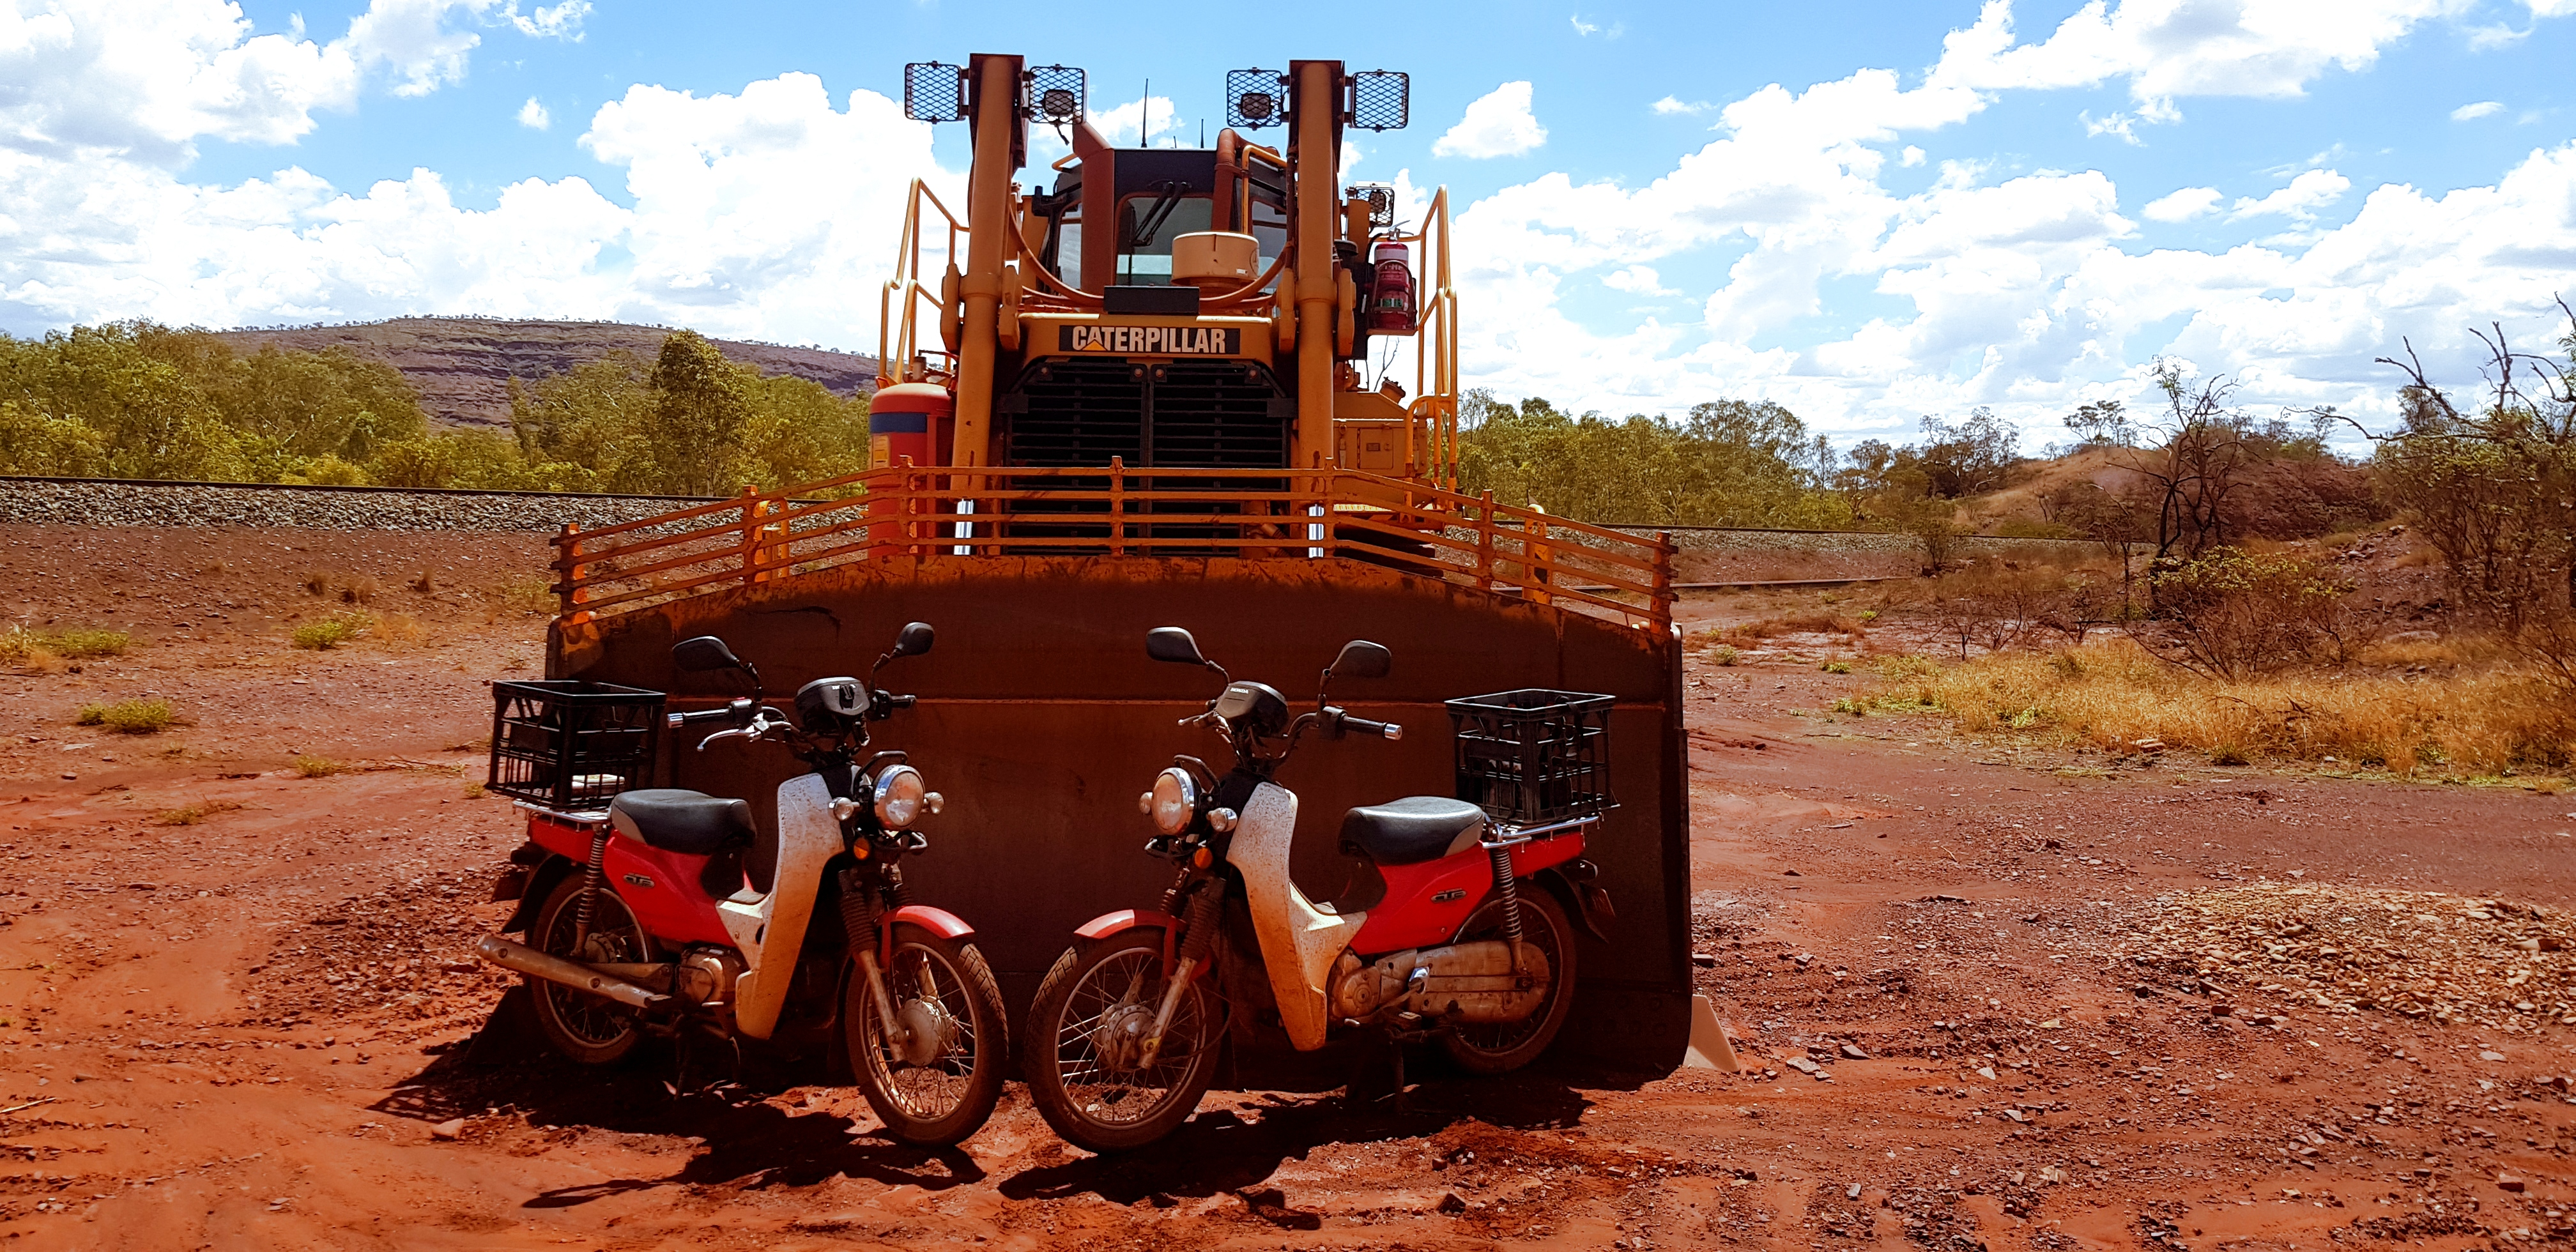 Postie Bike vs Loader - Pilbara Tour